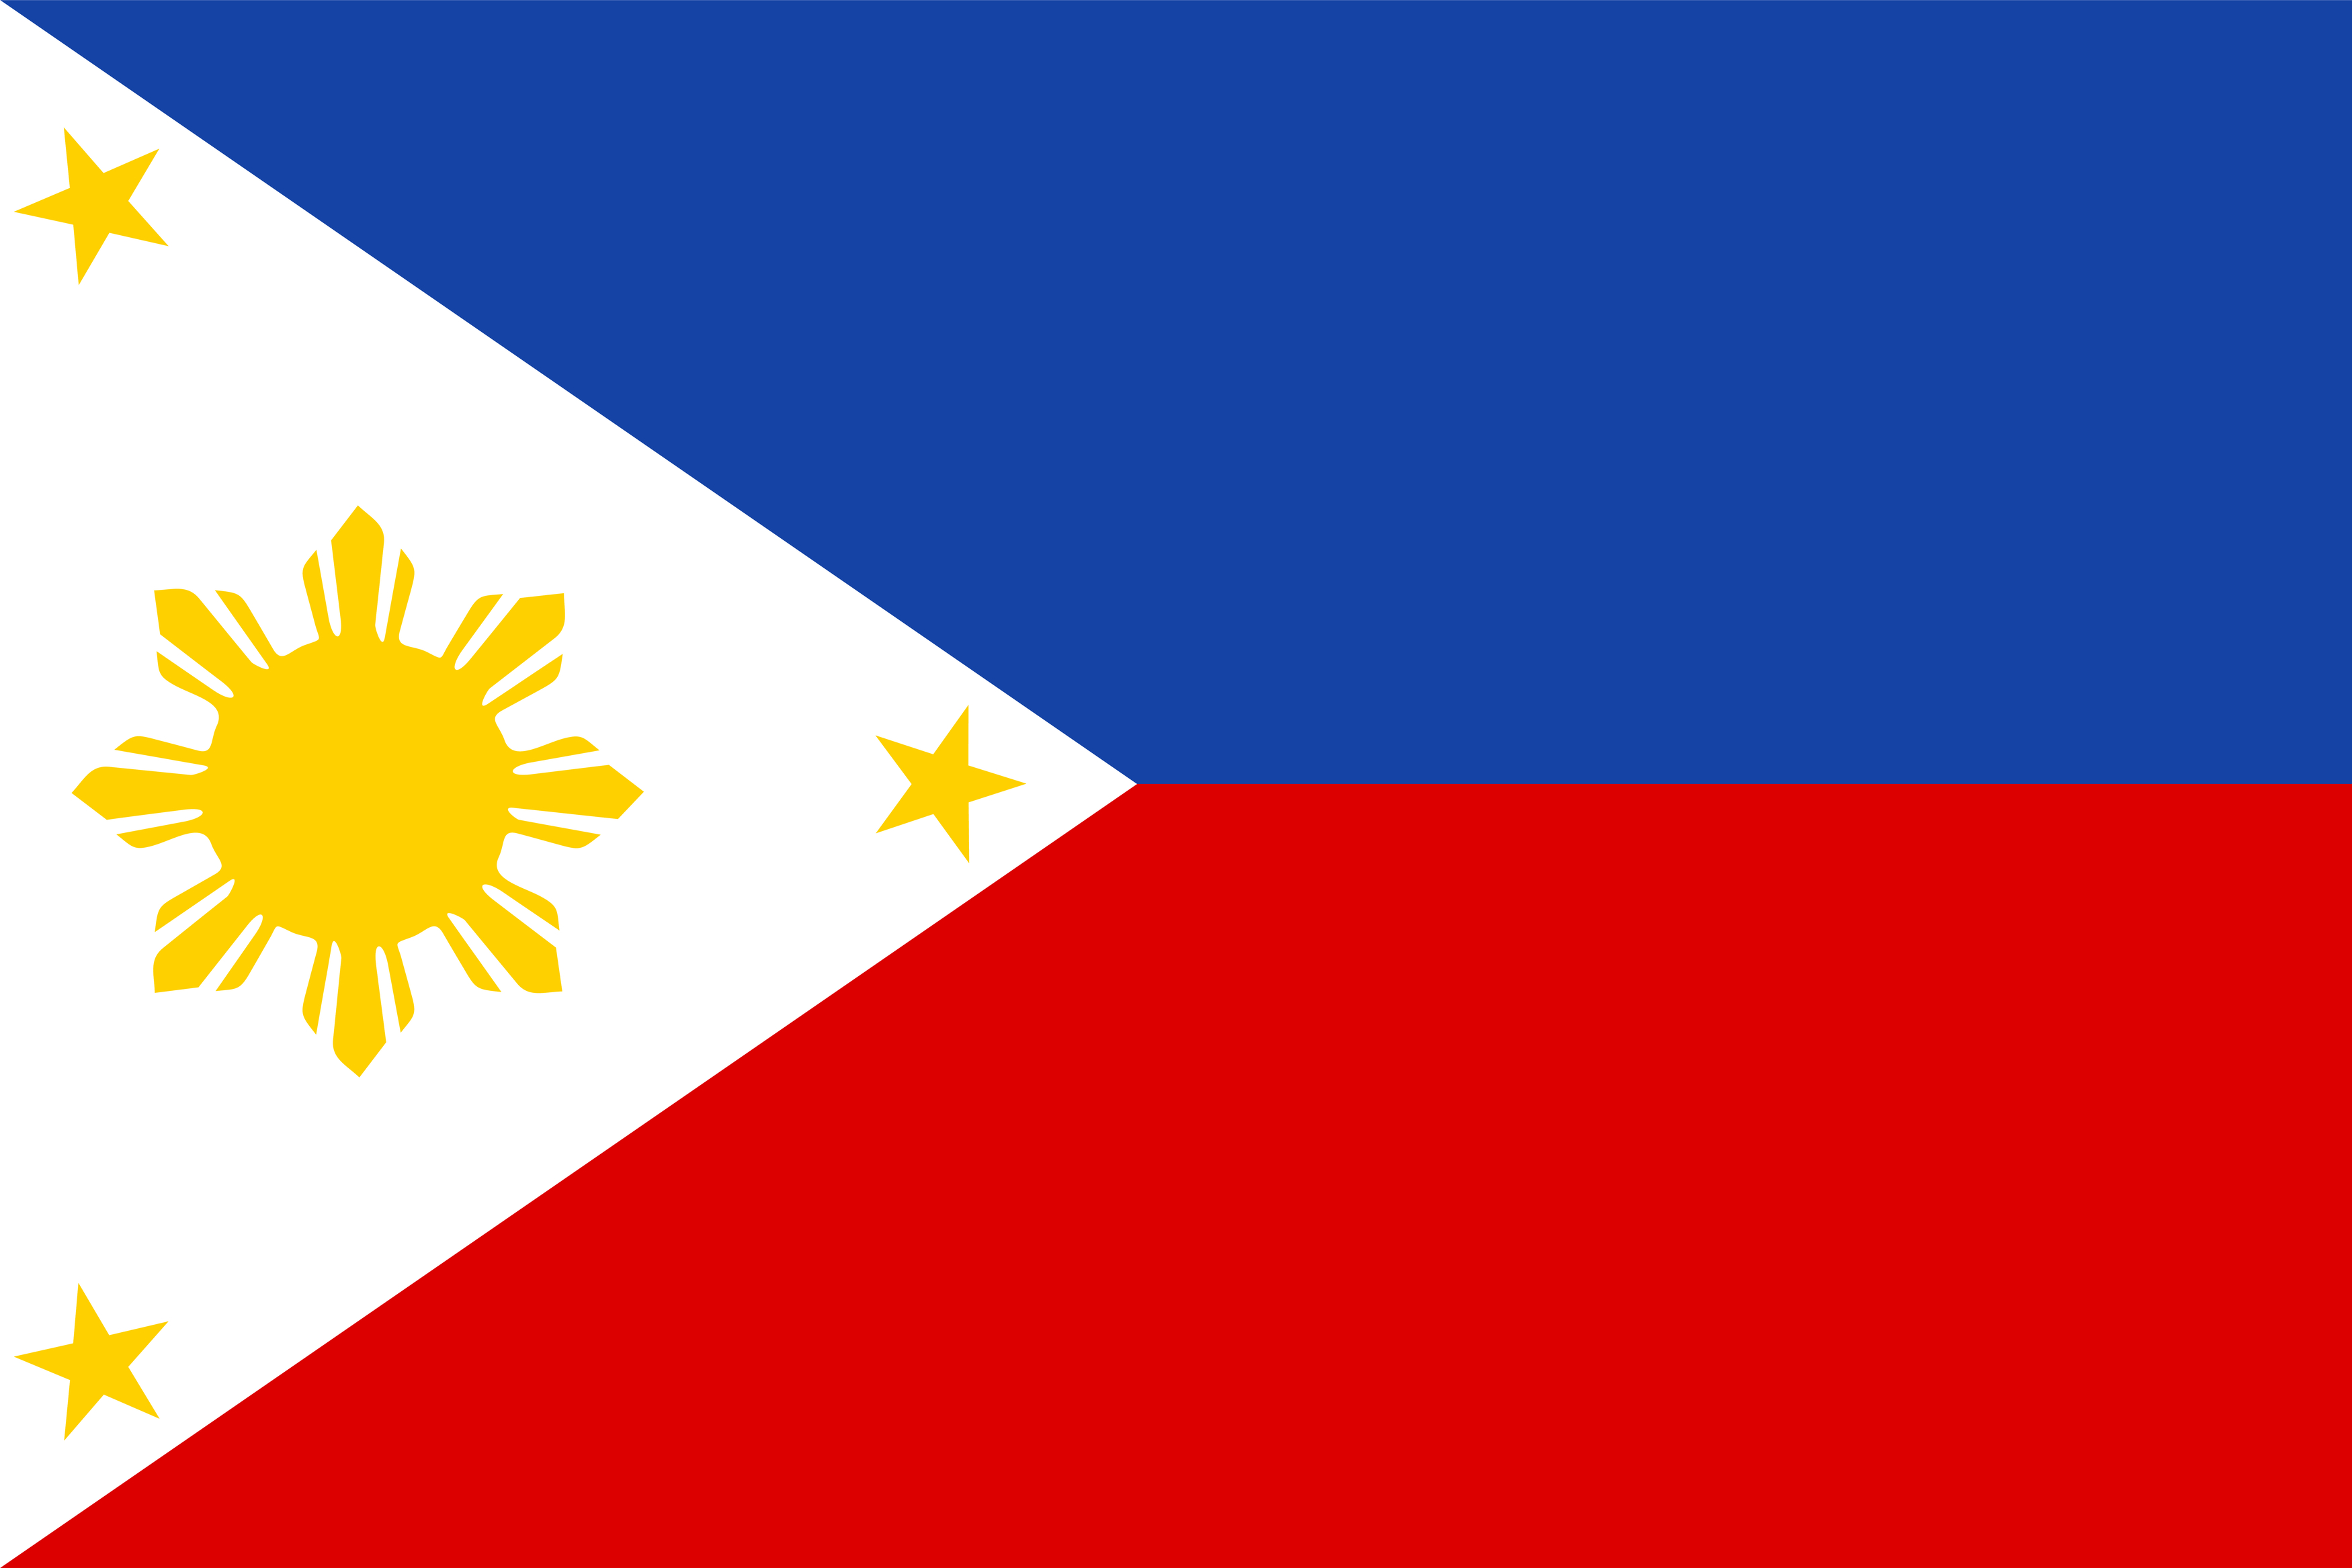 The flag of the Philippines features a sun and three five pointed stars.